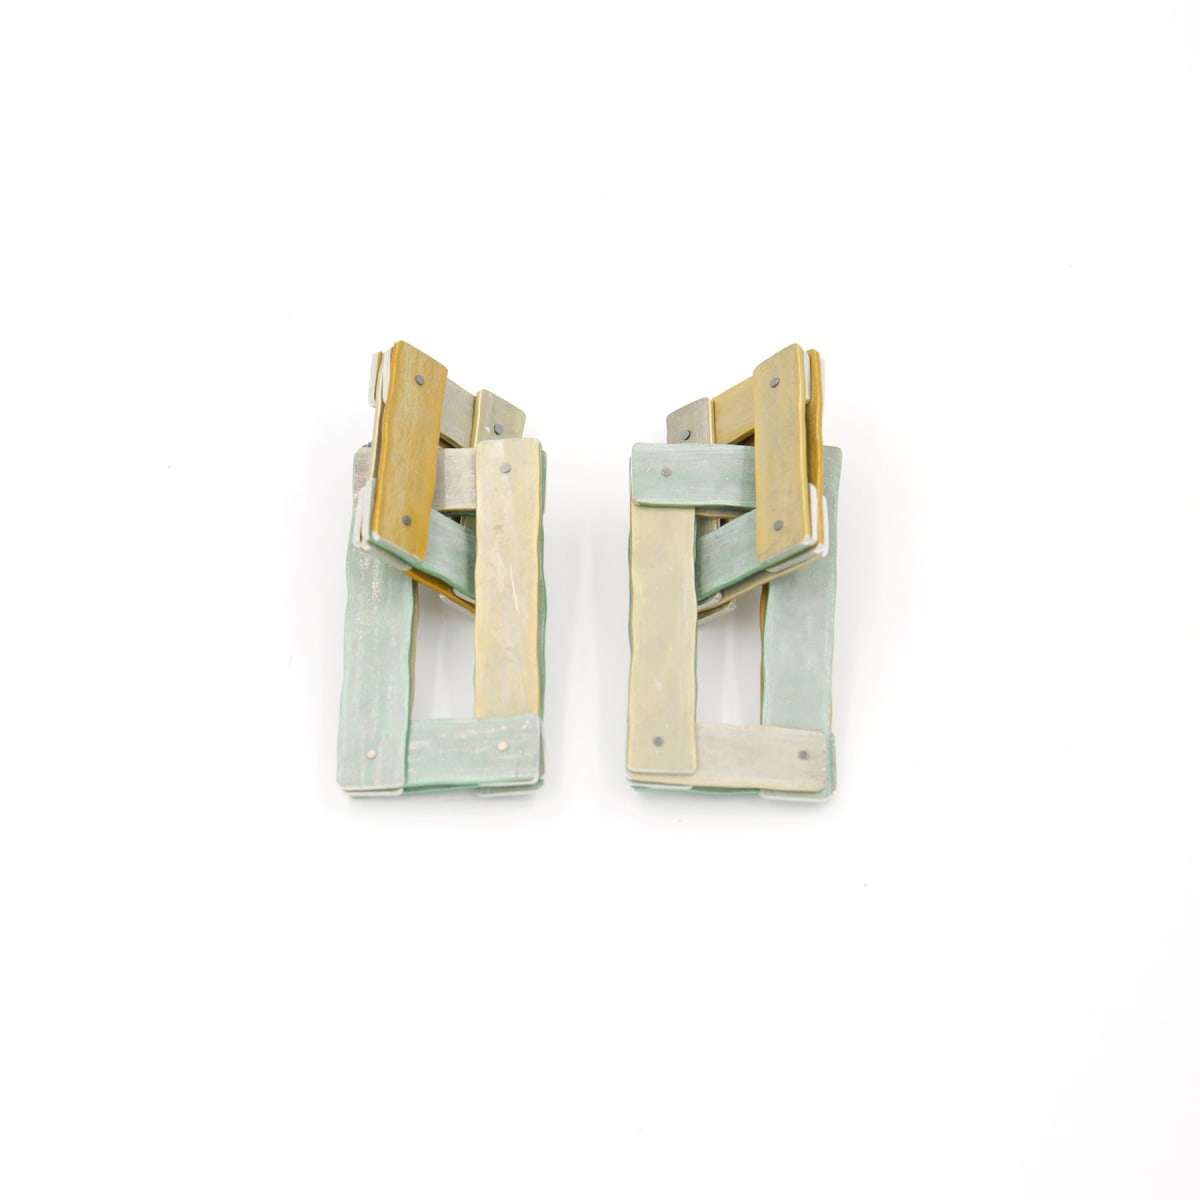 Taylor Zarkades King, Planked Chain Link Earrings